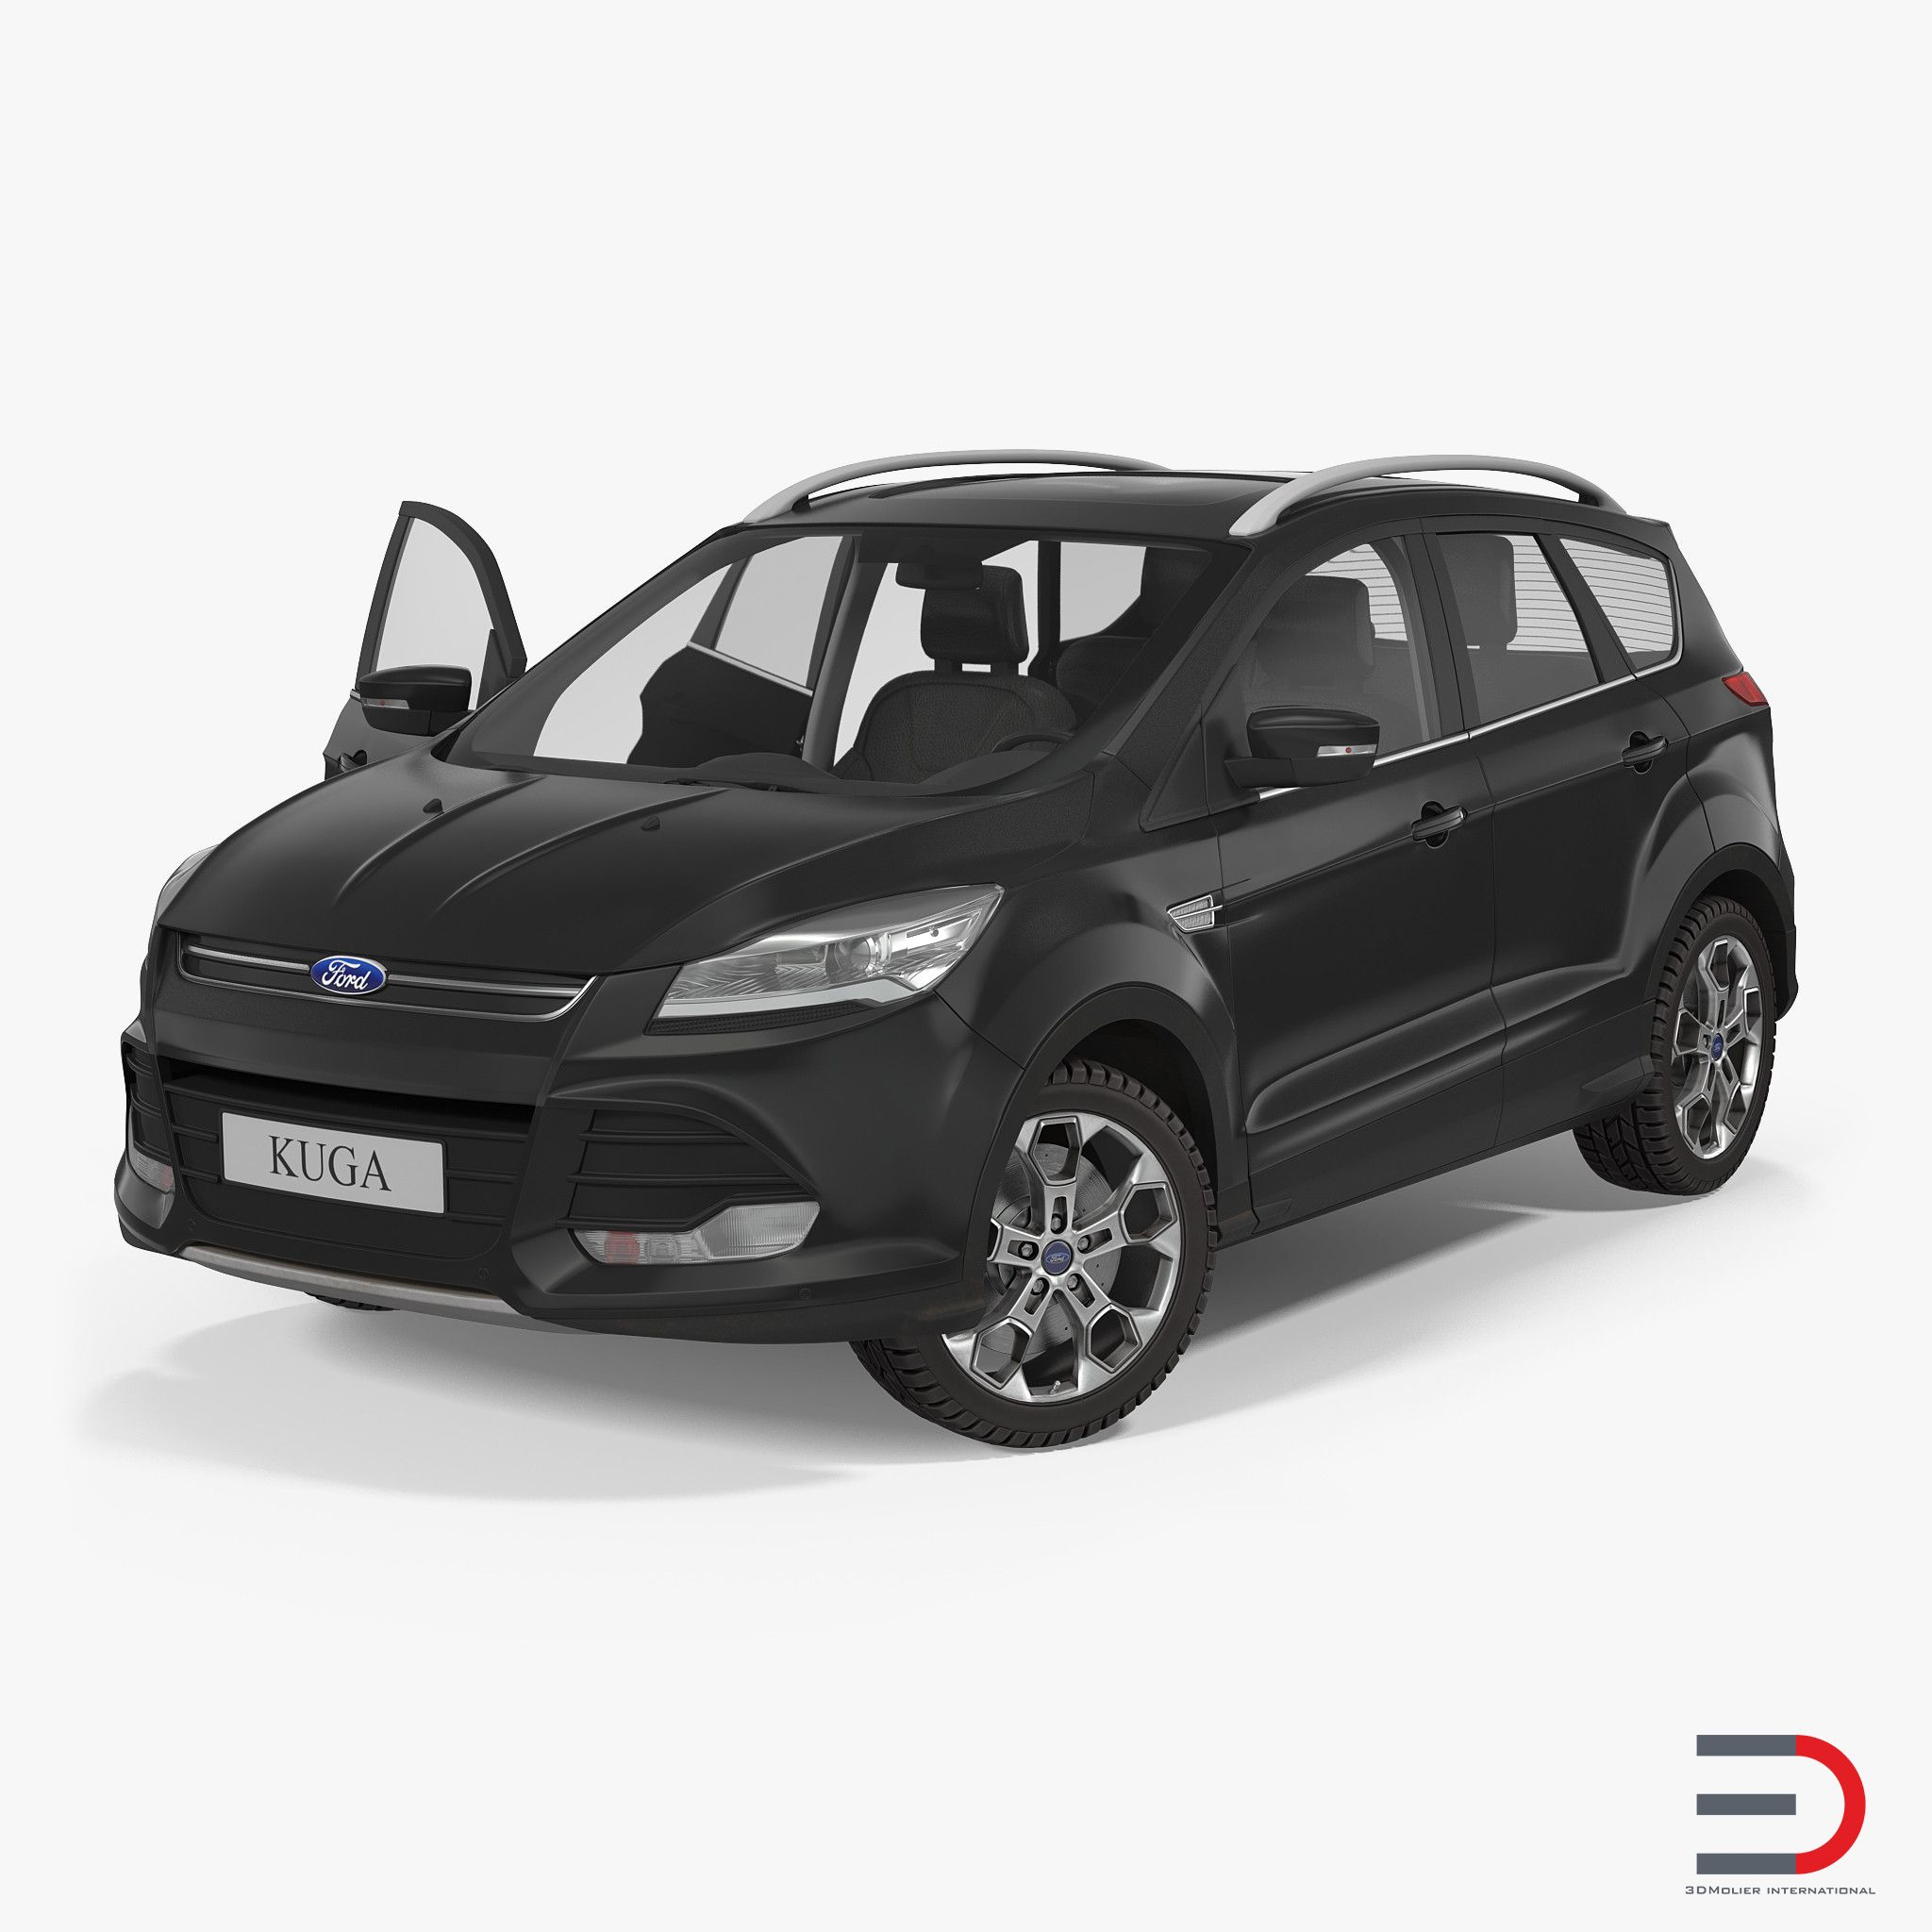 Ford Kuga Fwd 2016 3d Model Rigged Fwd Ford Kuga 3d Model